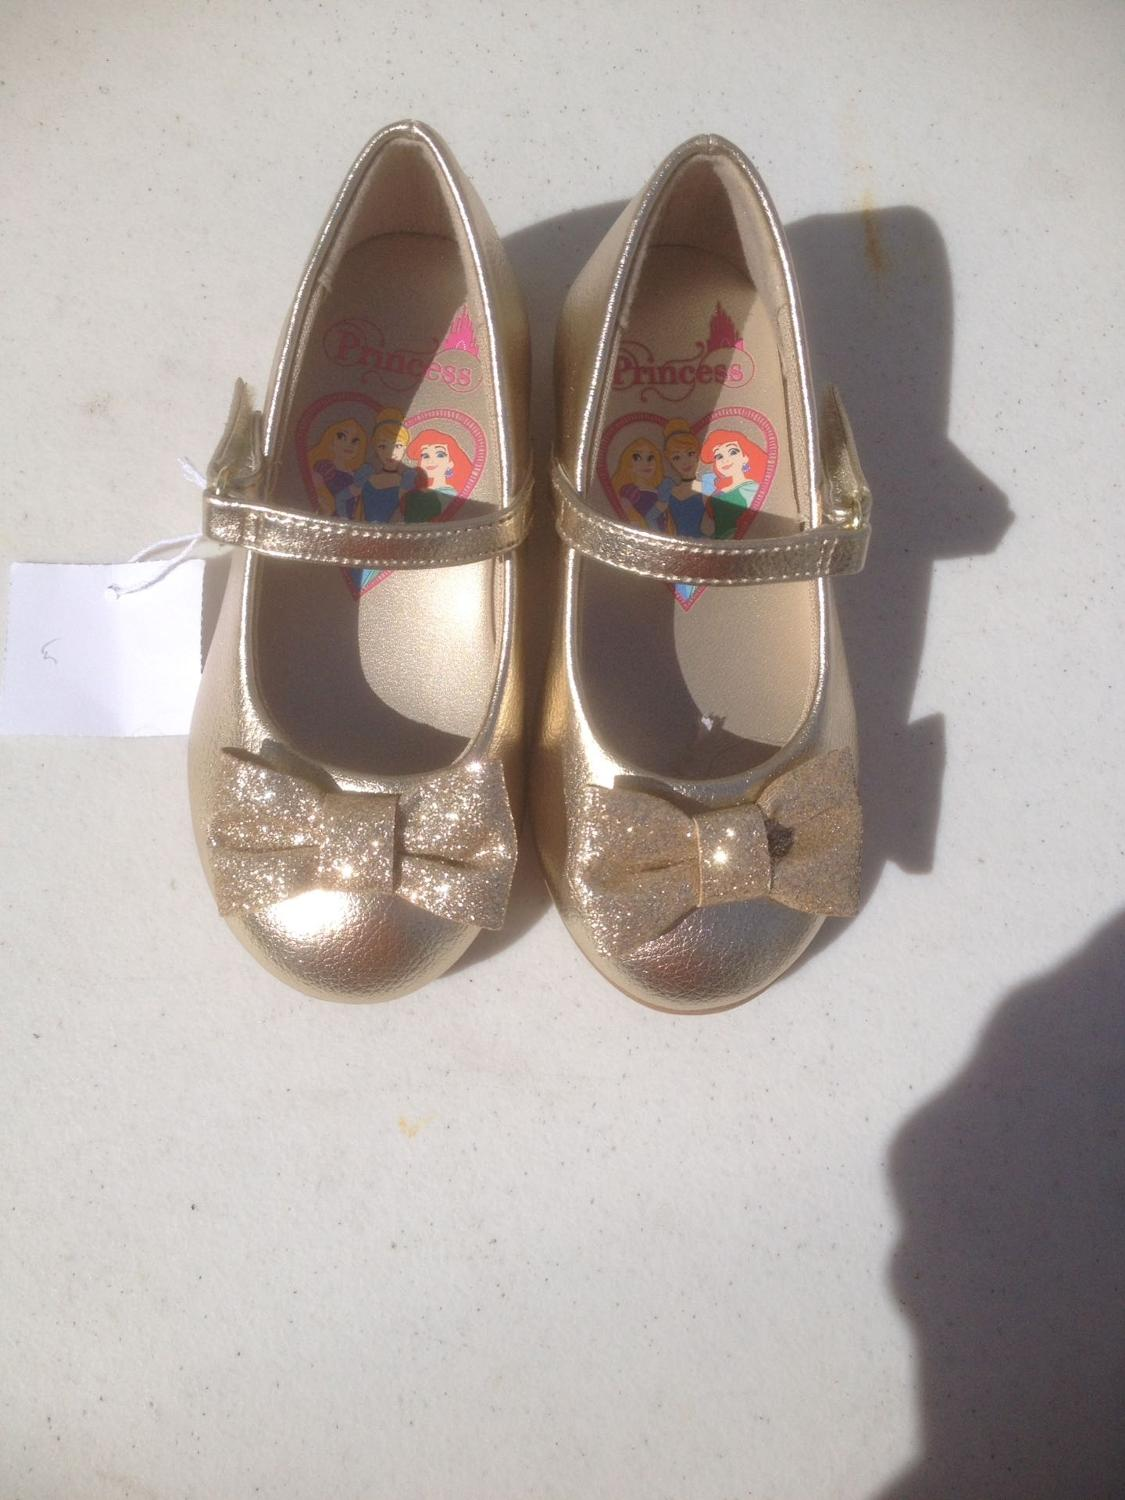 2ac01a421c1a Best Nwt Disney Princess Shoes Size 51 2  12.50 for sale in Erie ...